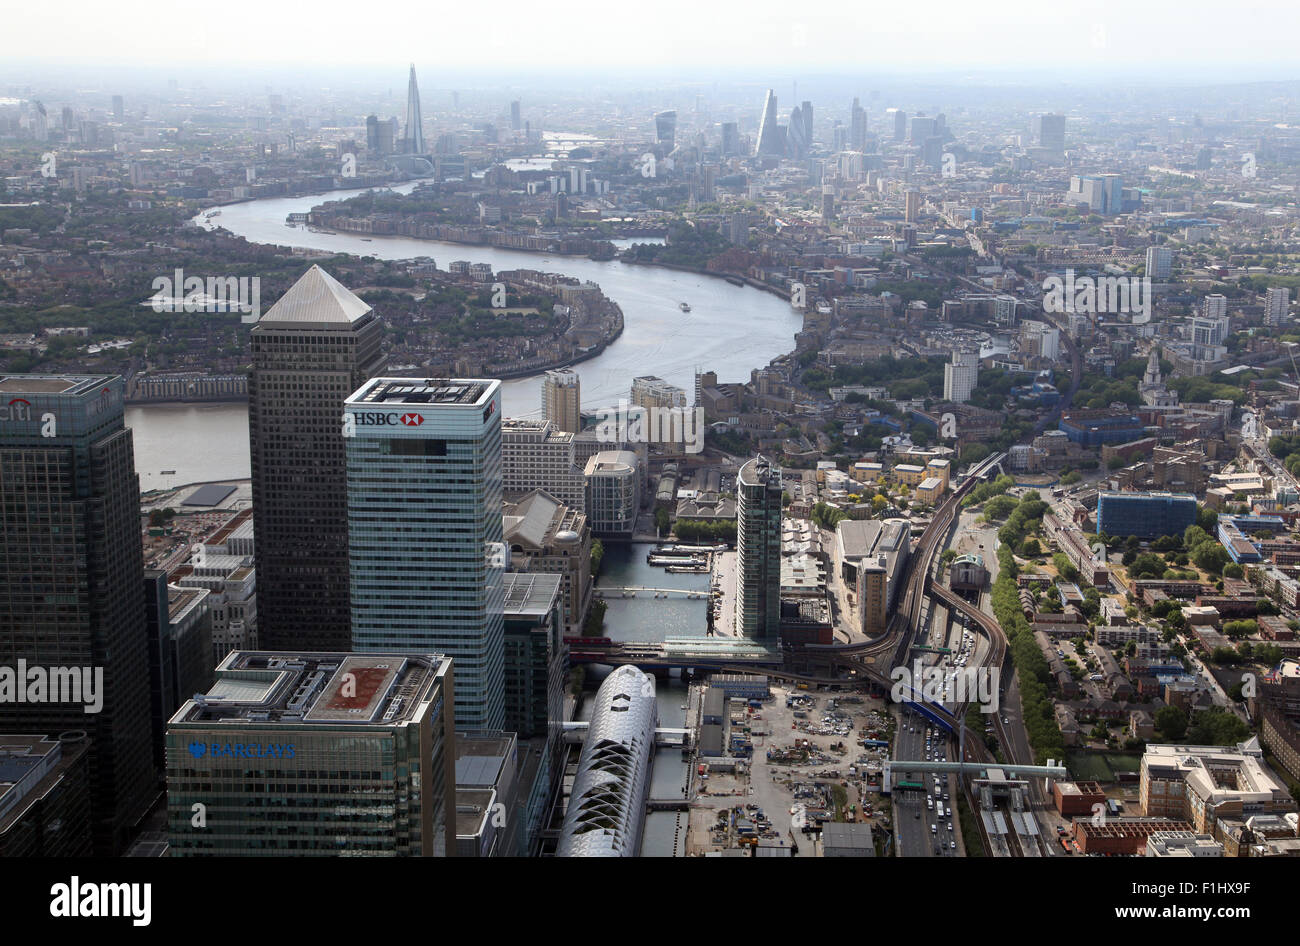 aerial view of Canary Wharf, Docklands & River Thames towards the central London skyline, UK - Stock Image